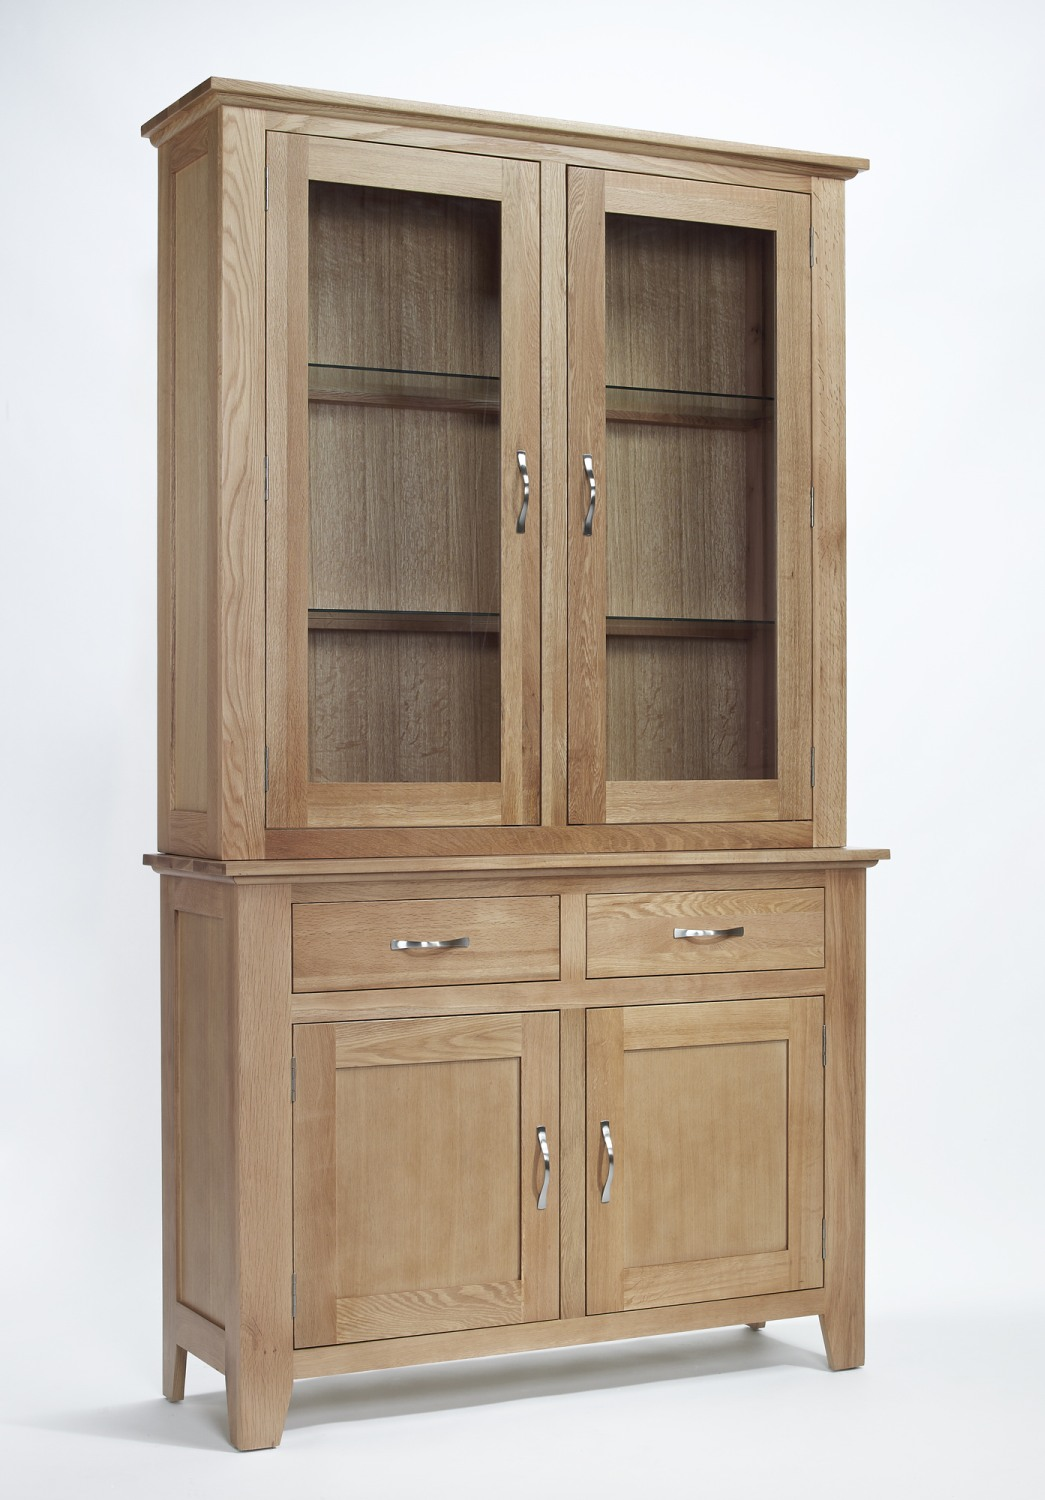 Compton solid oak furniture dining room dresser display for Dining room display cabinets